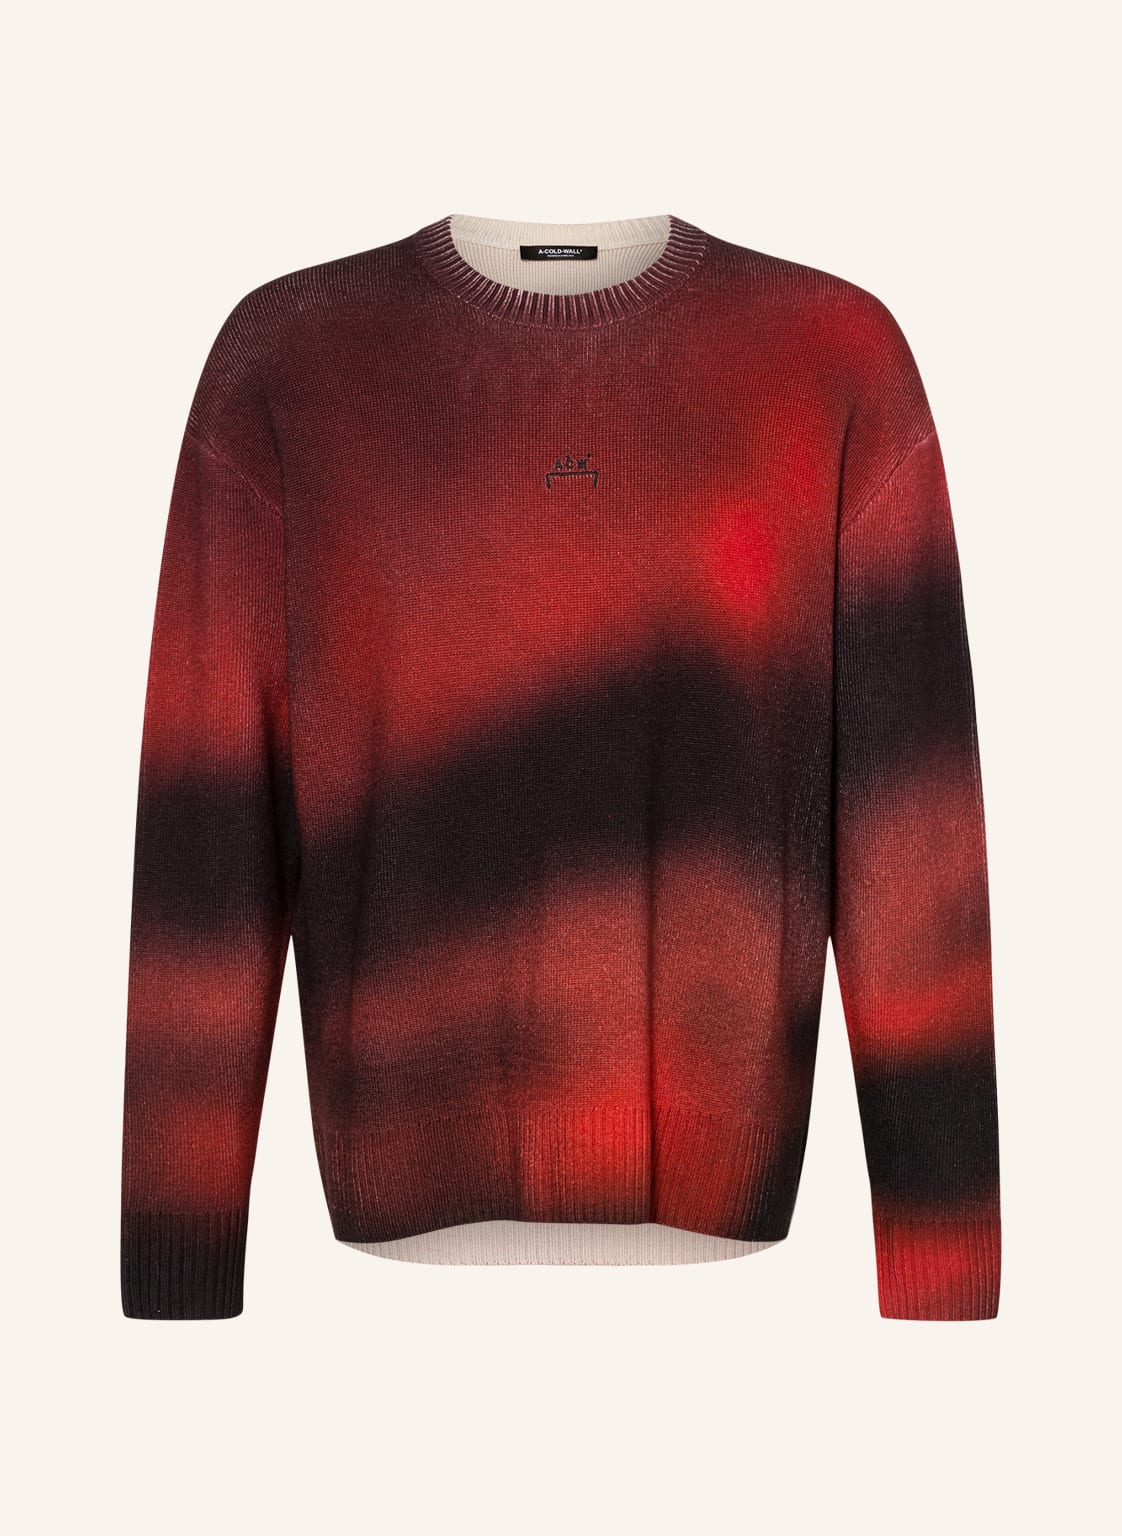 Image of A-Cold-Wall* Oversized-Pullover rot